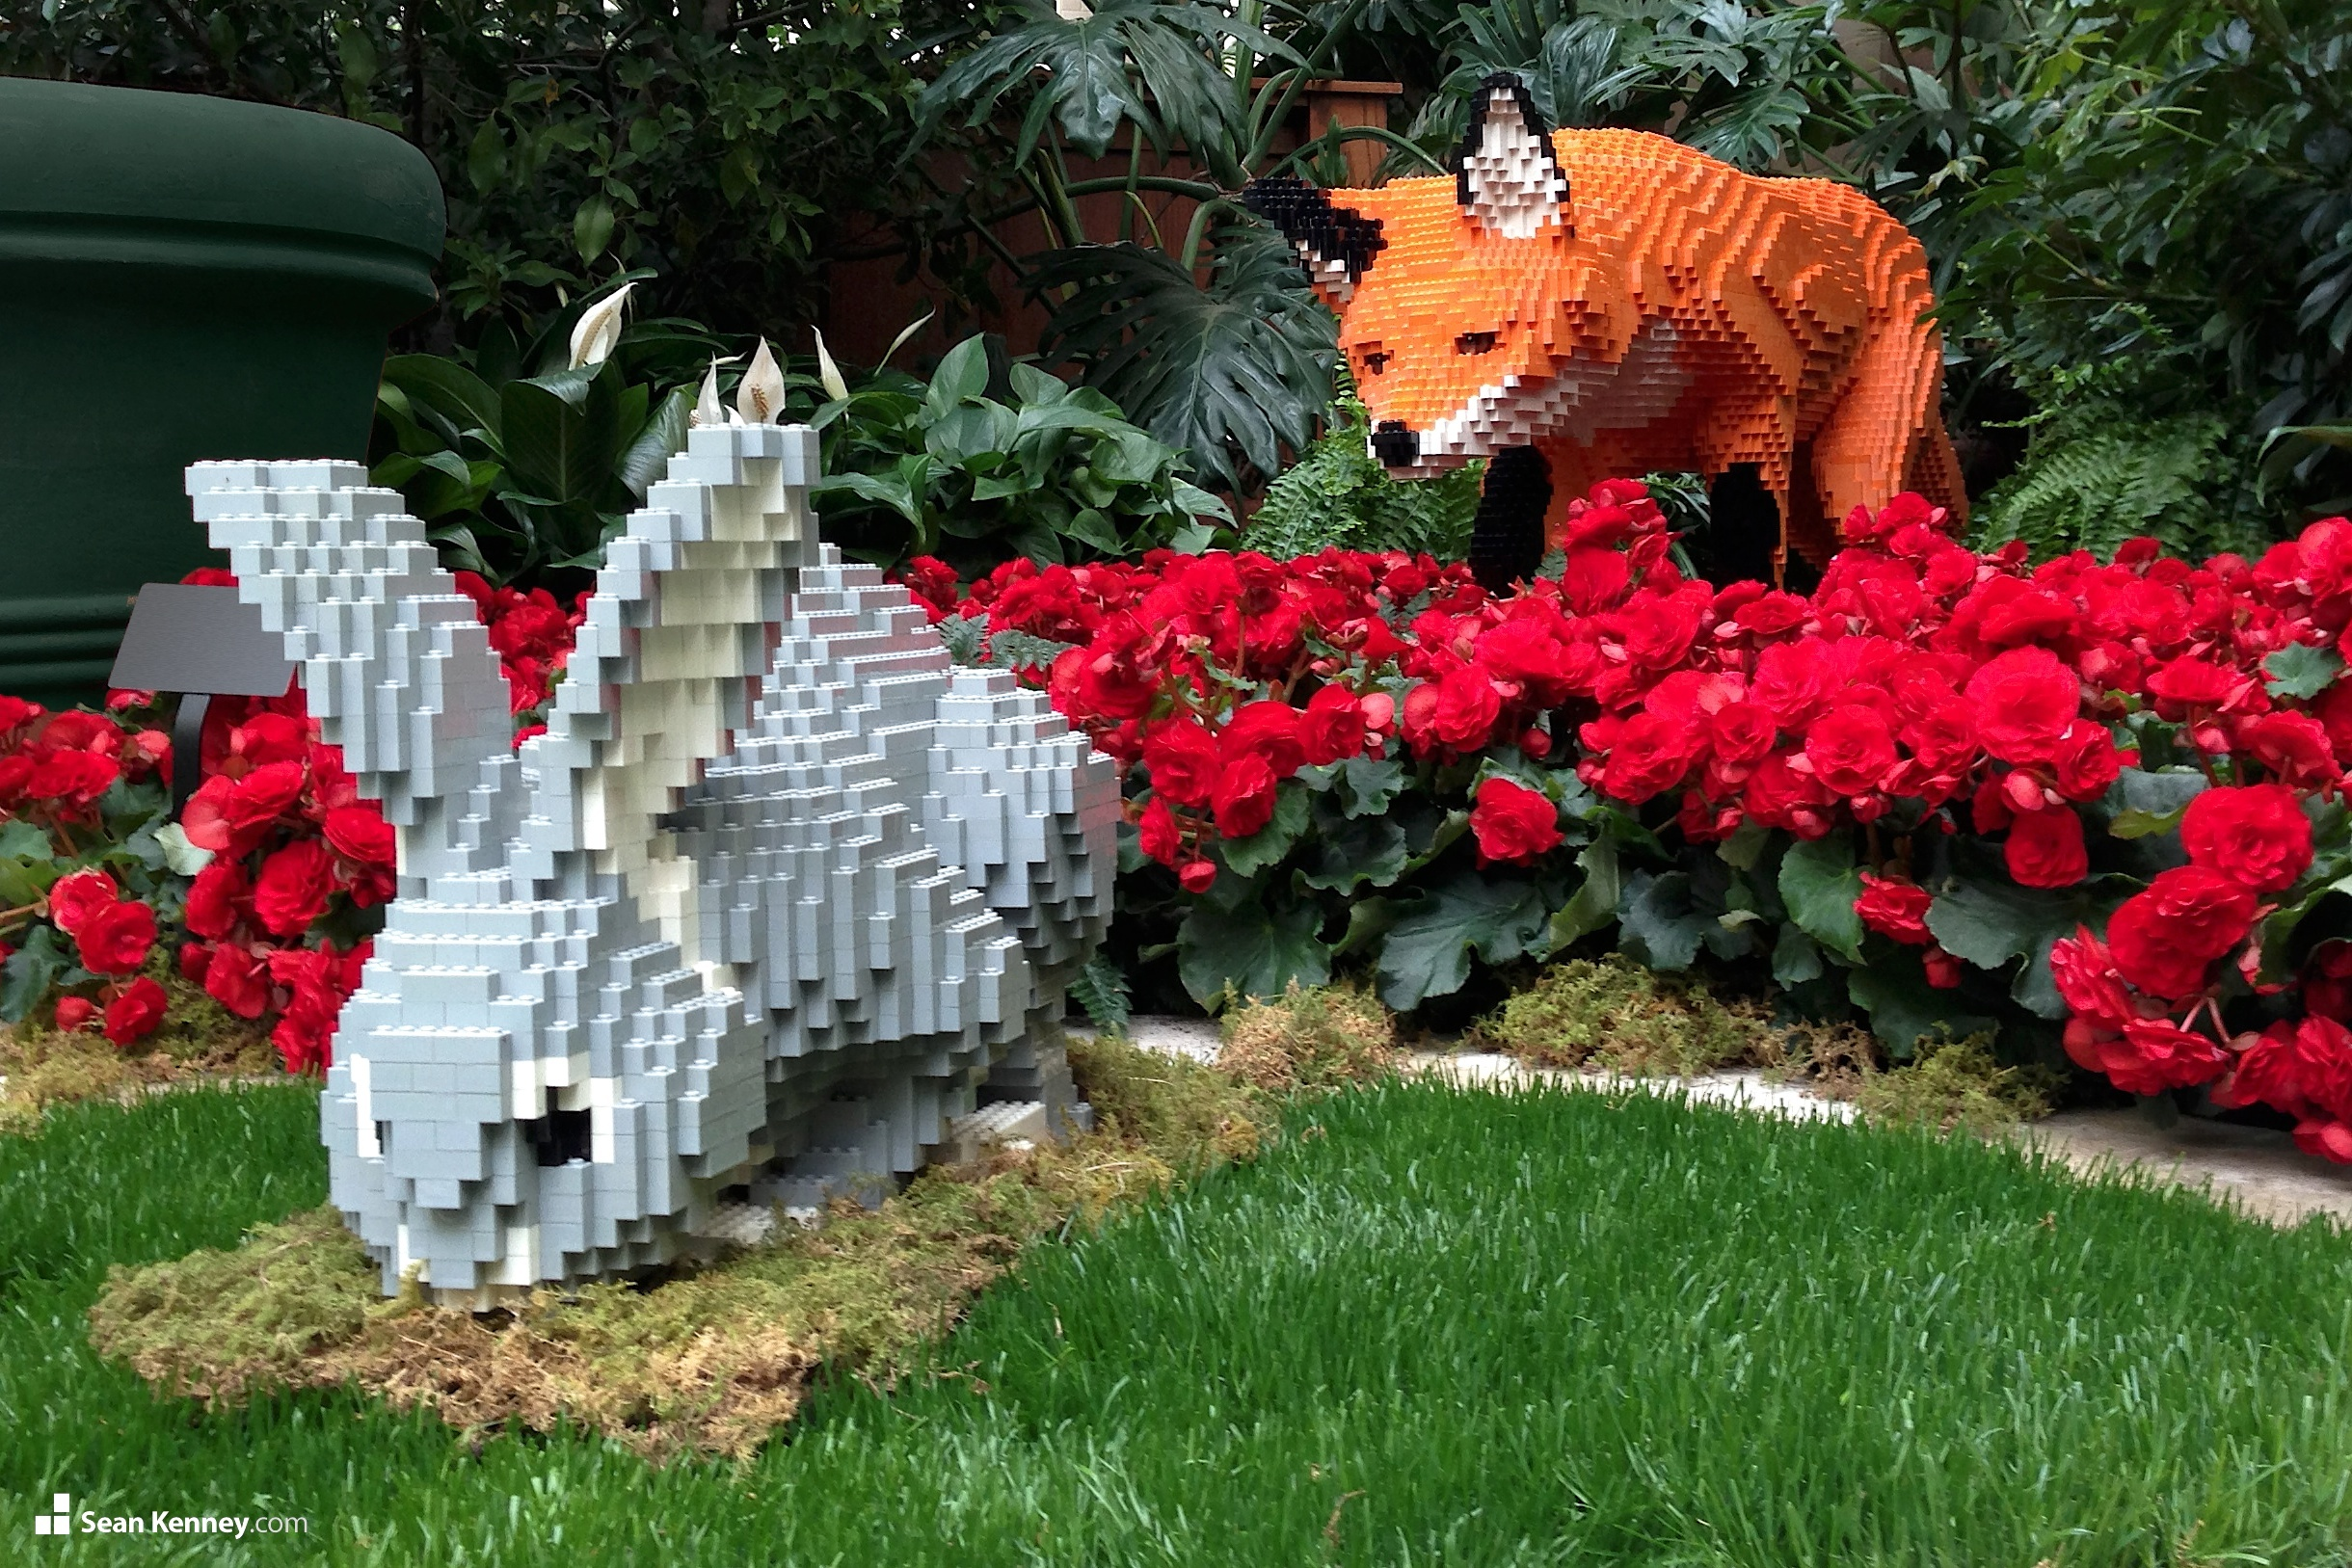 See 27 Giant Lego Statues On Display In A Botanic Garden Starting Today